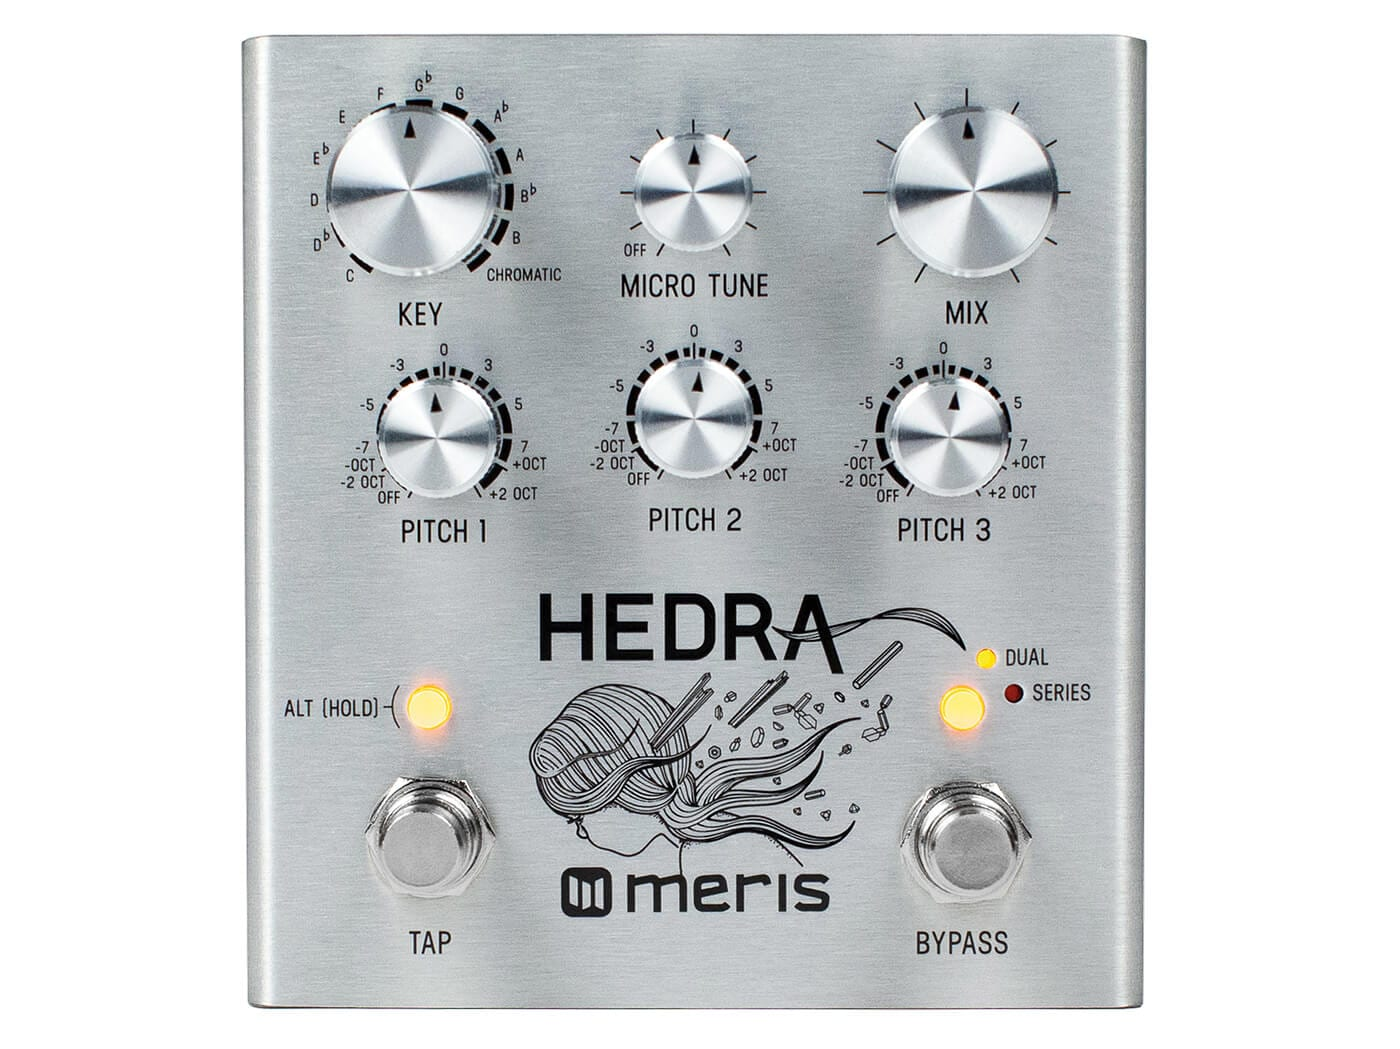 Meris Hedra - Classic '90s studio rack pitch shifting in a pedal!